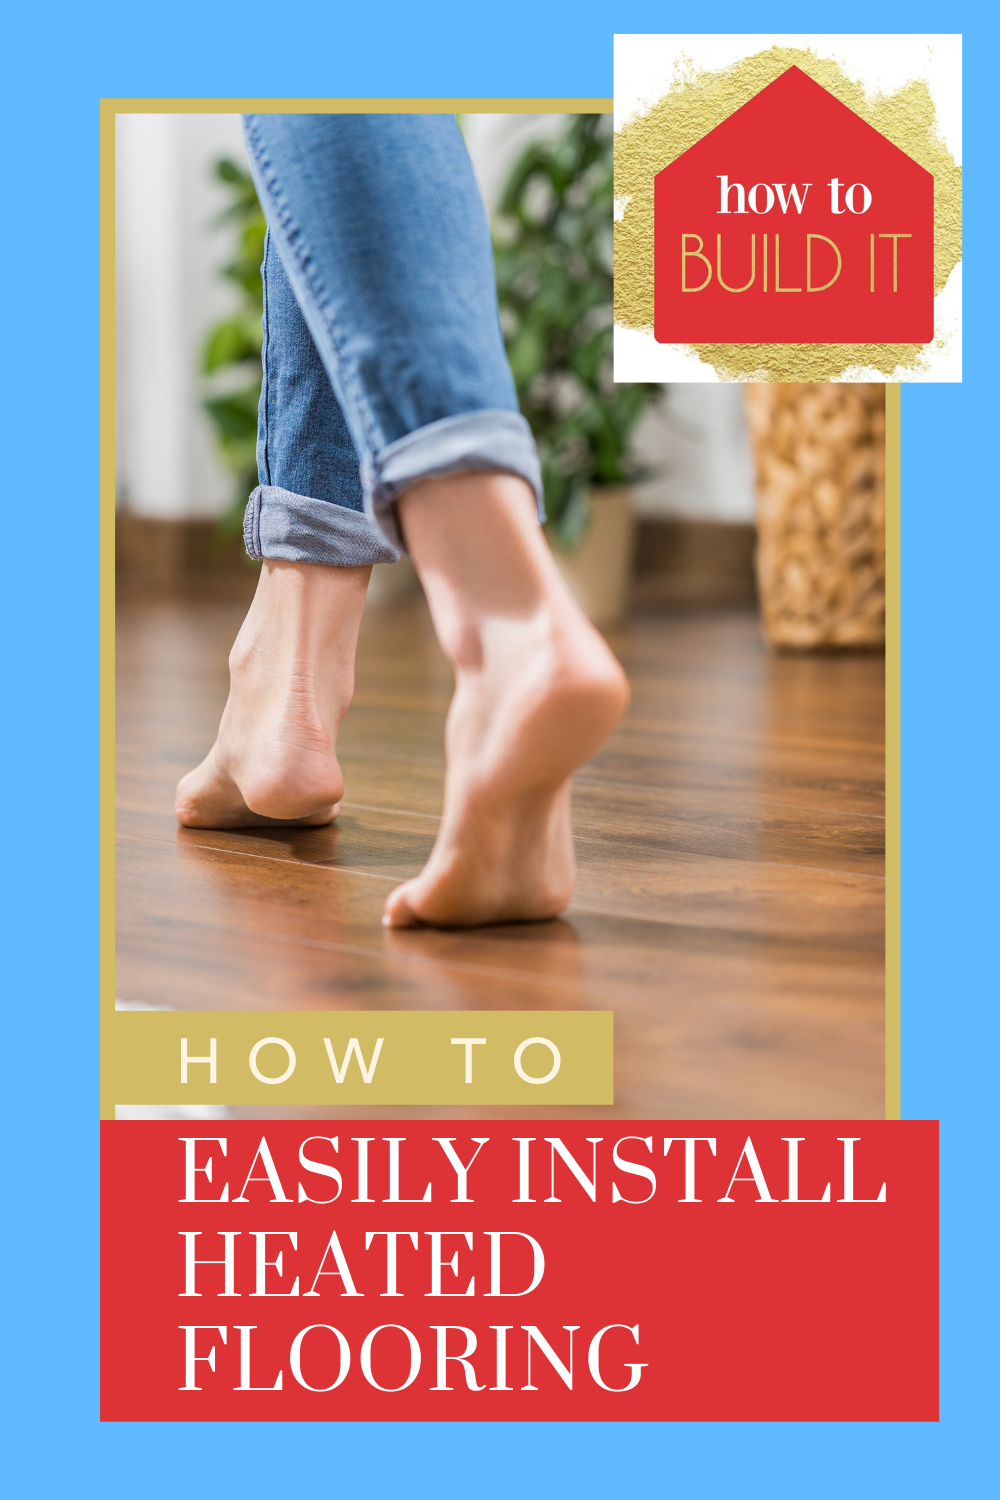 Howtobuildit.org is the place to go to learn to make home improvements all on your own! Check out loads of easy DIYs and projects! Learn how to install heated flooring today!